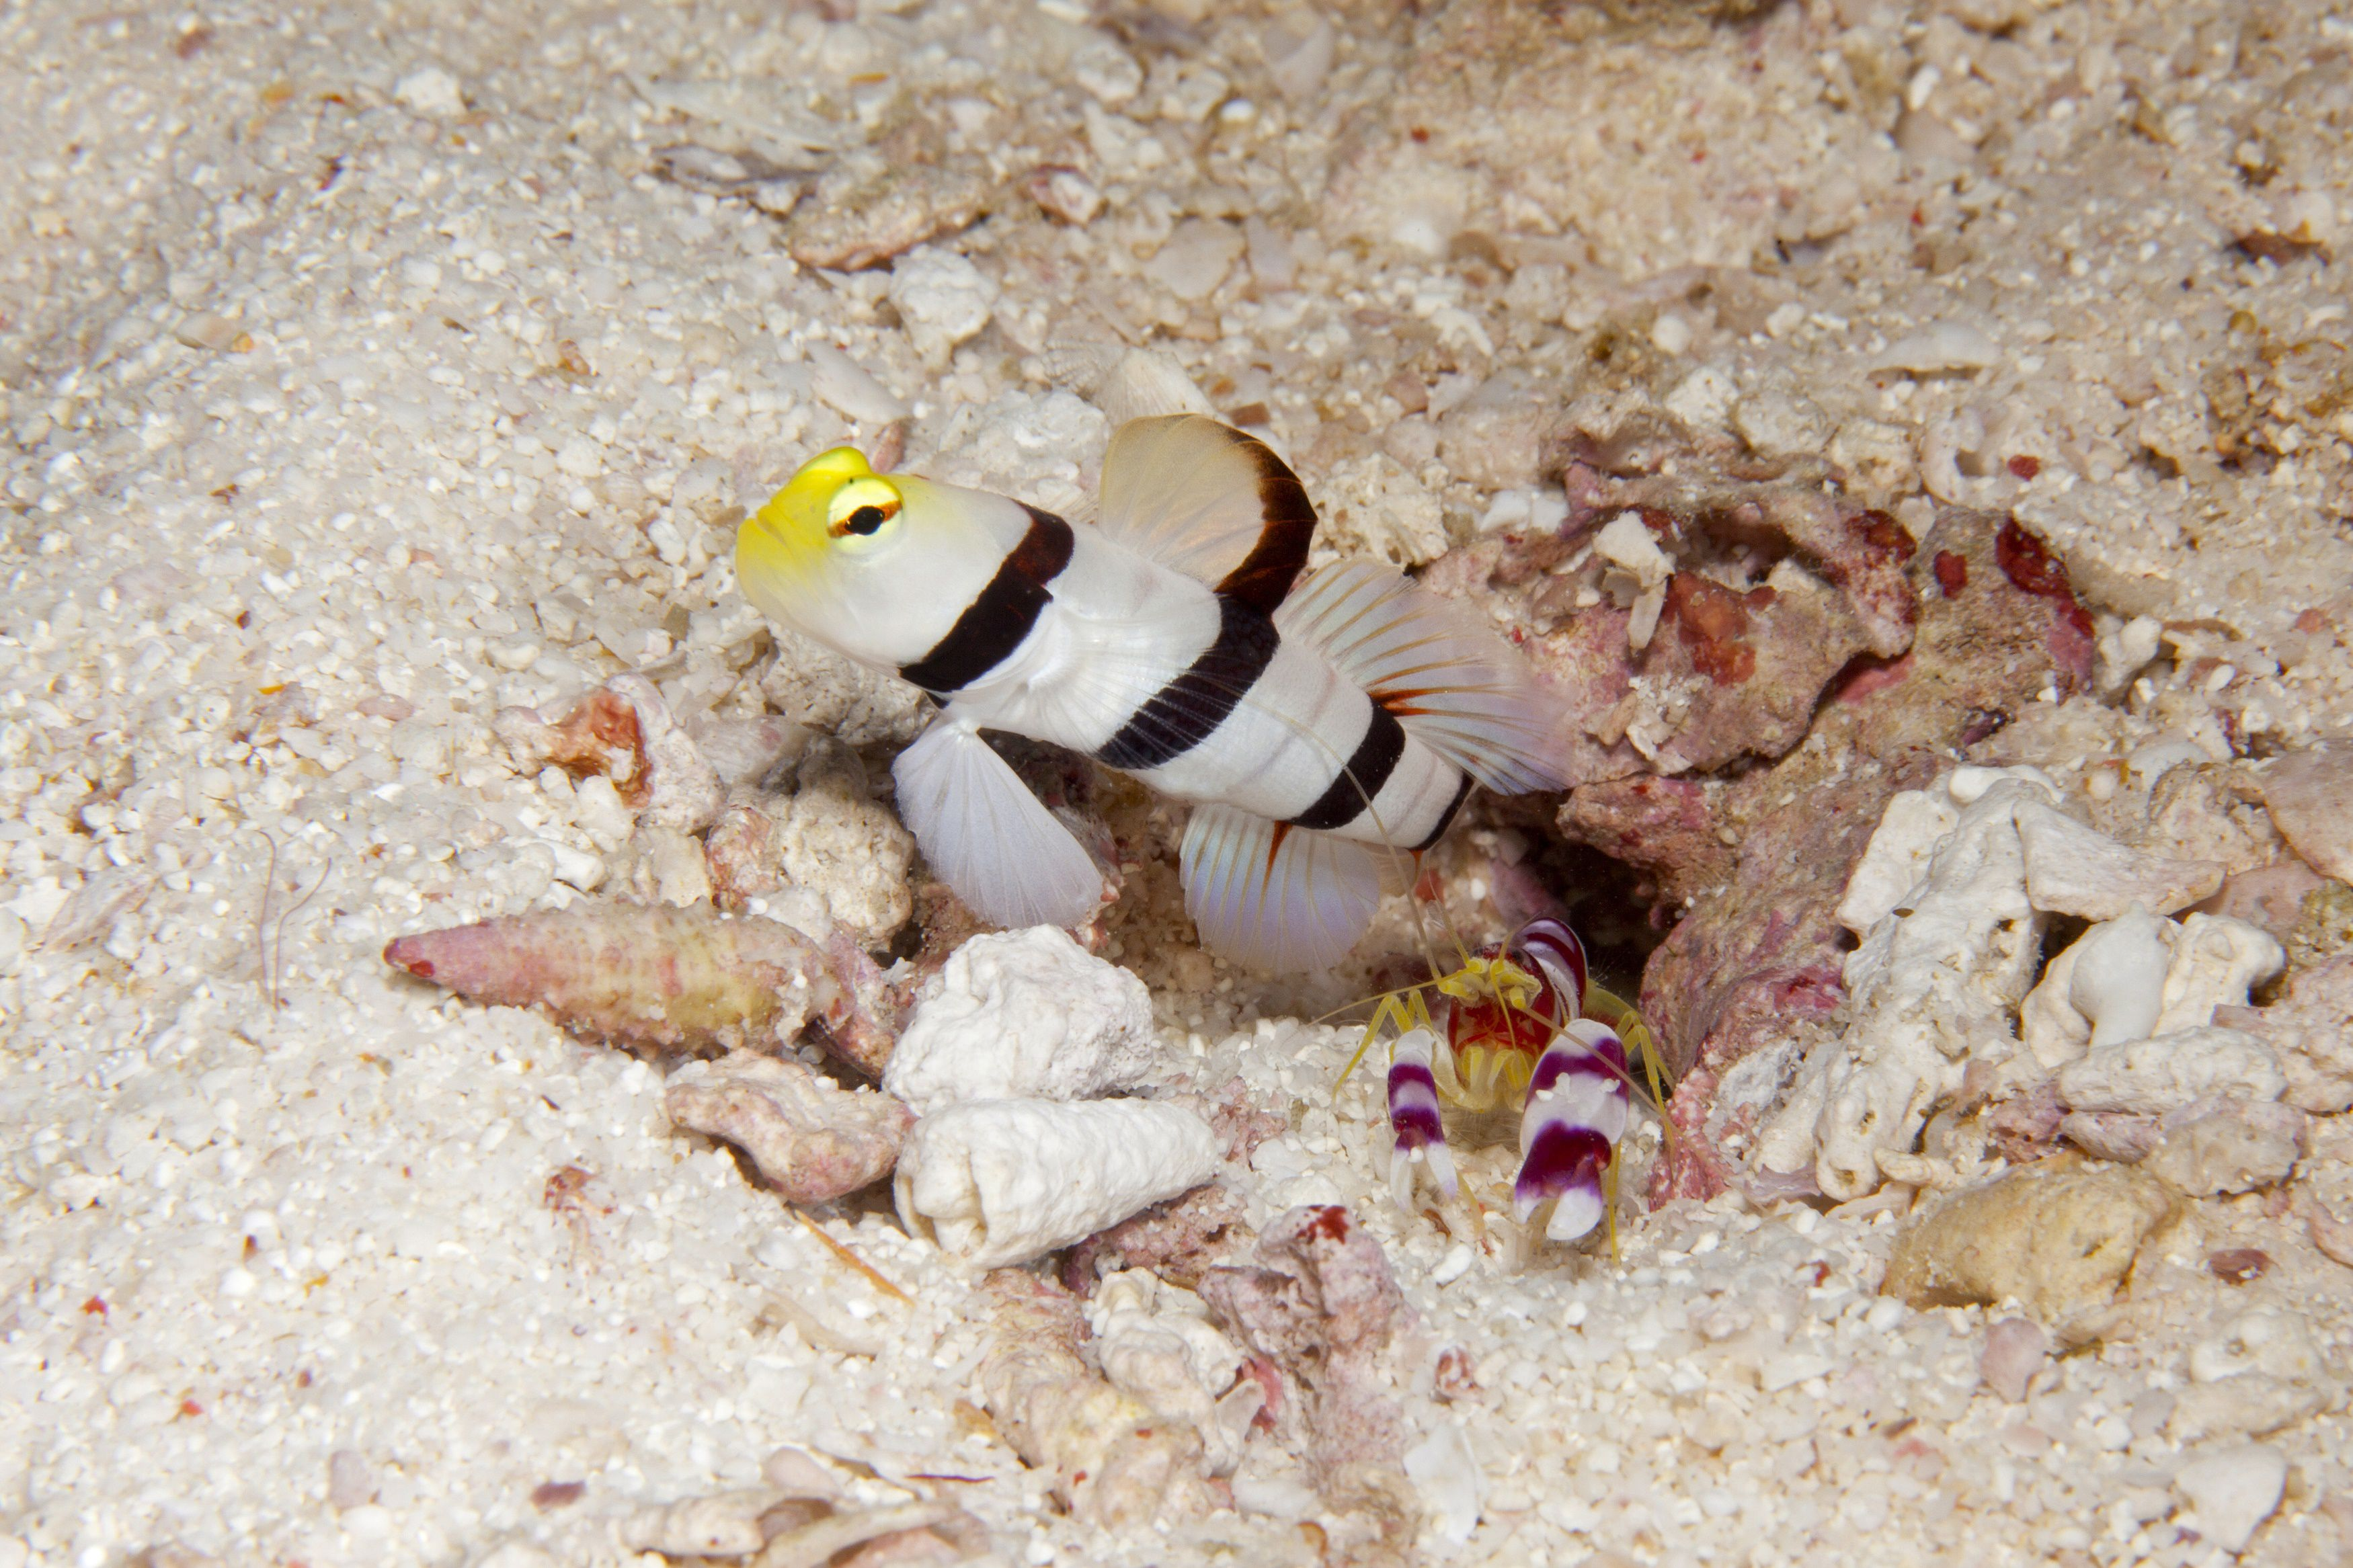 Snapping Shrimp with Yellownose Prawn Goby